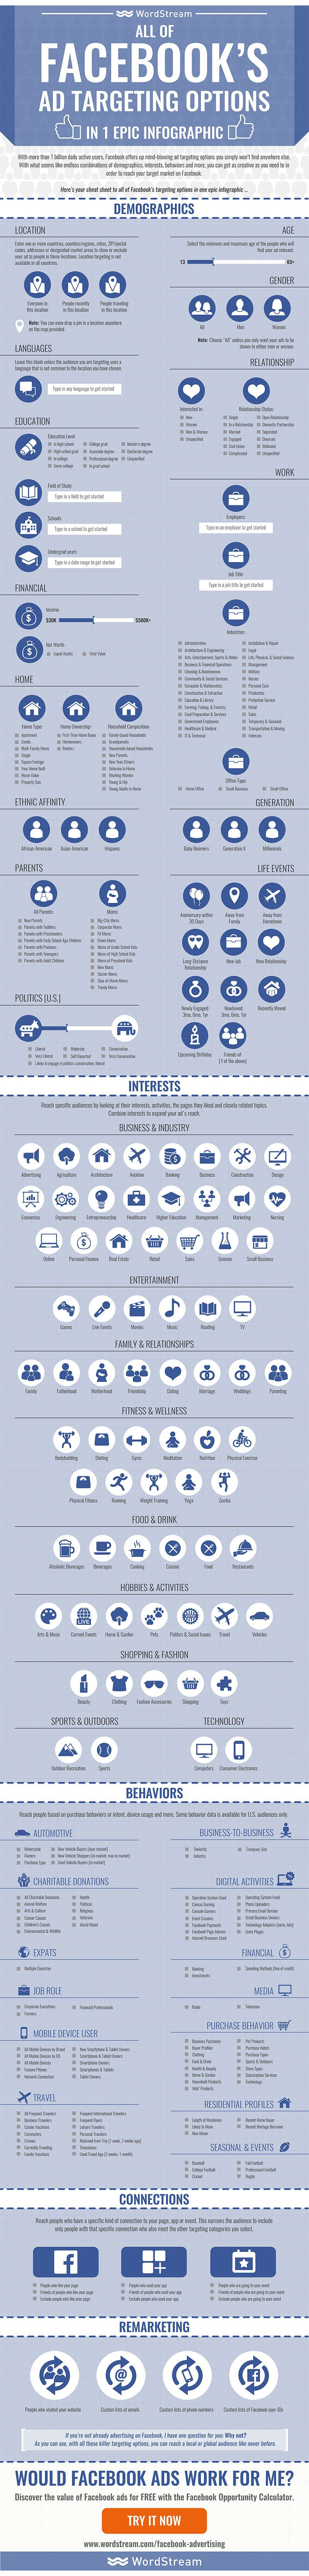 [INFOGRAPHIC] Facebook ad targeting: every possible option available—Details>